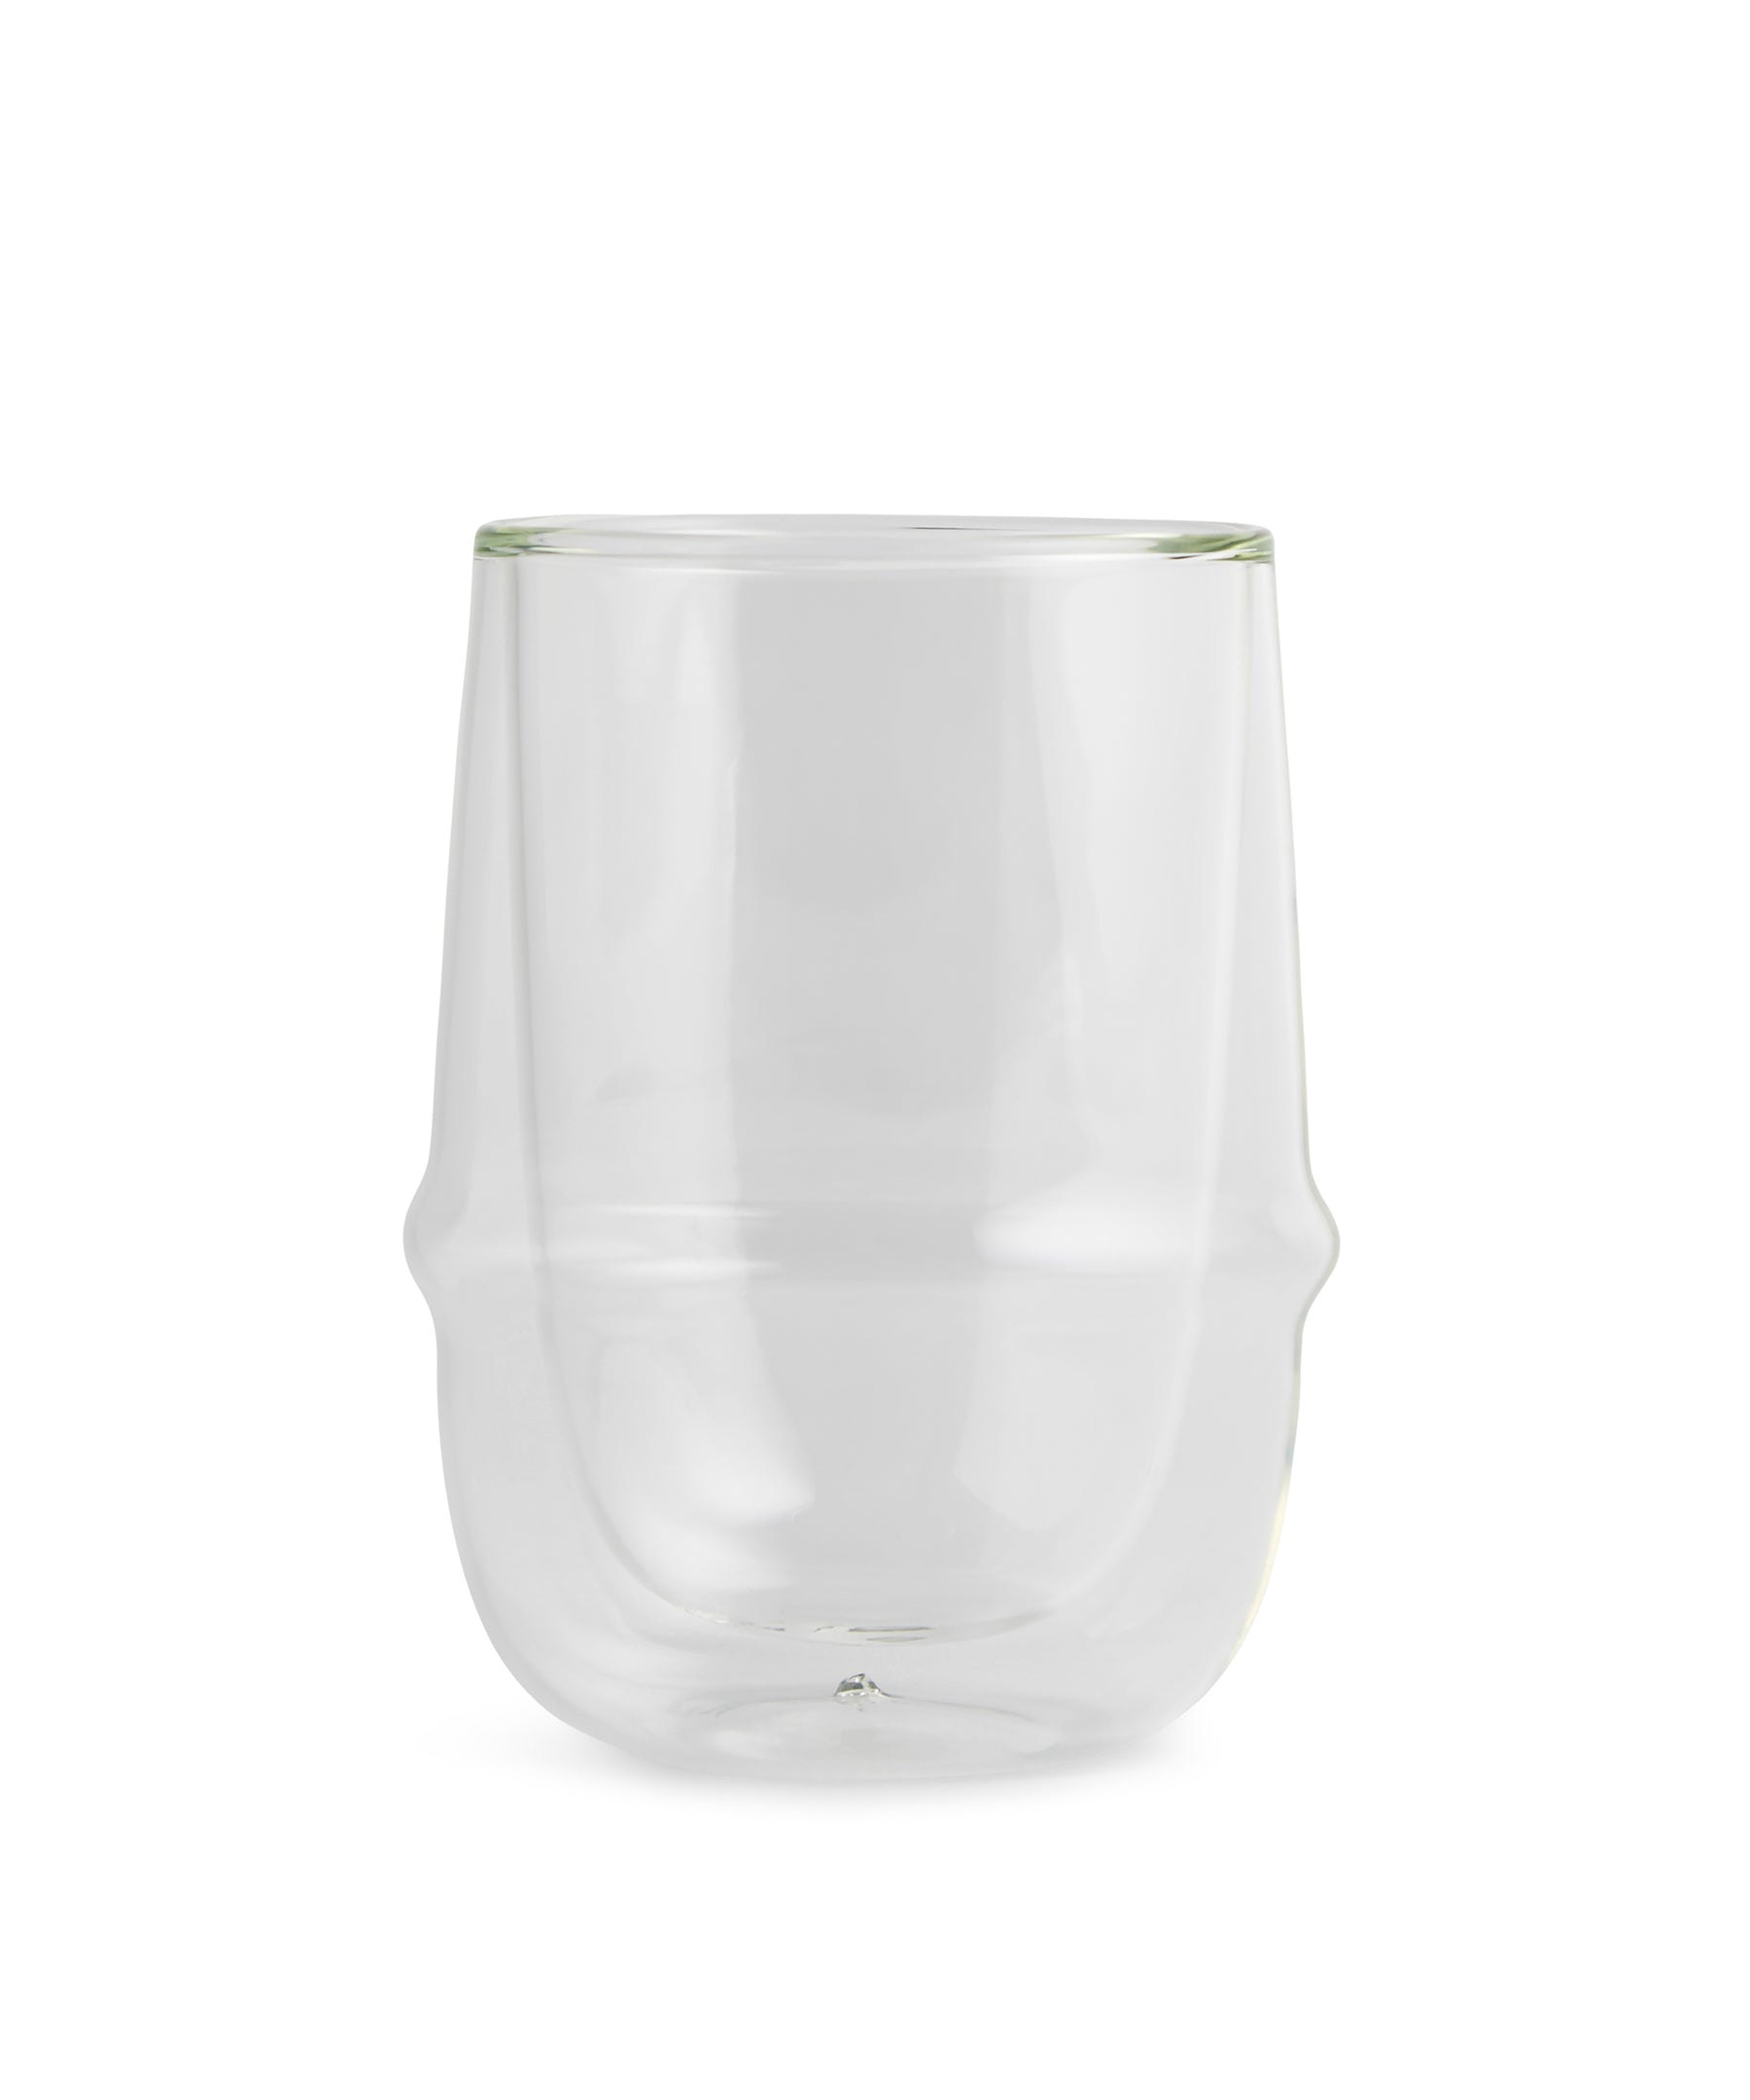 Kronos Double Wall Iced Tea Glass by Kinto